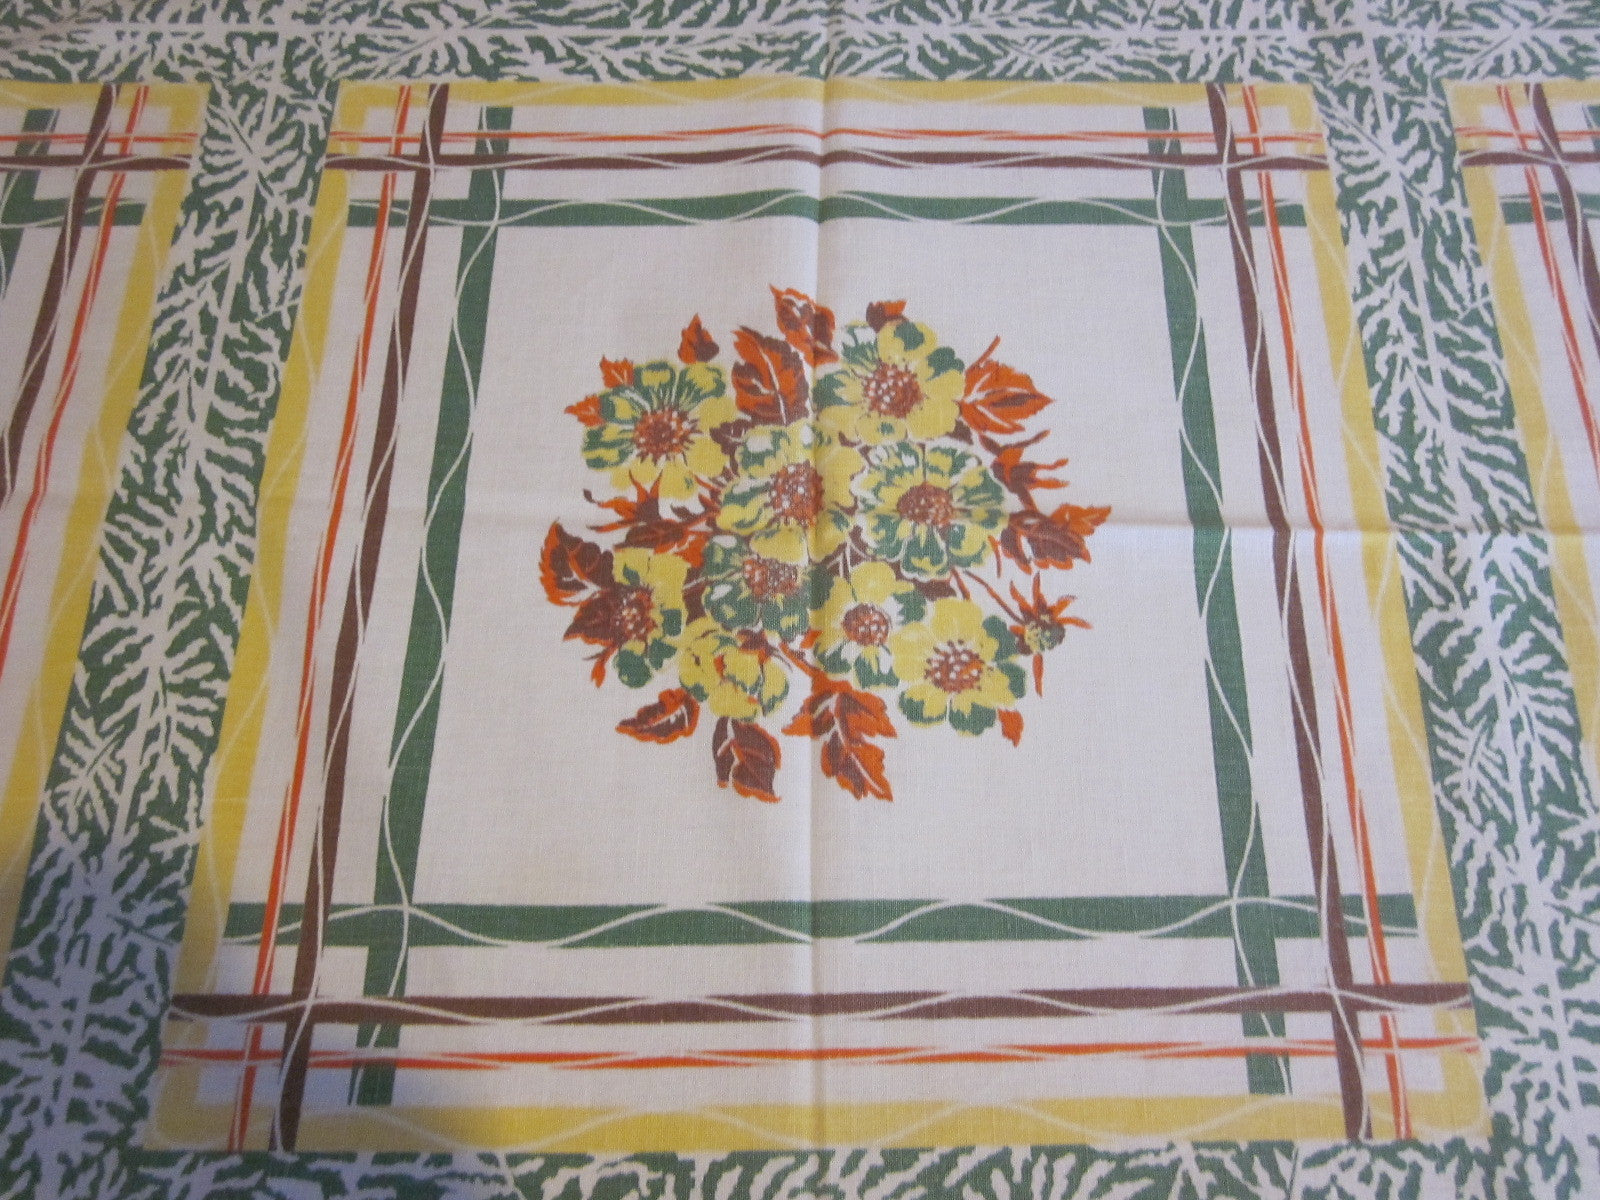 Fall Floral Plaid Napkins Novelty Vintage Printed Tablecloth (49 X 47)